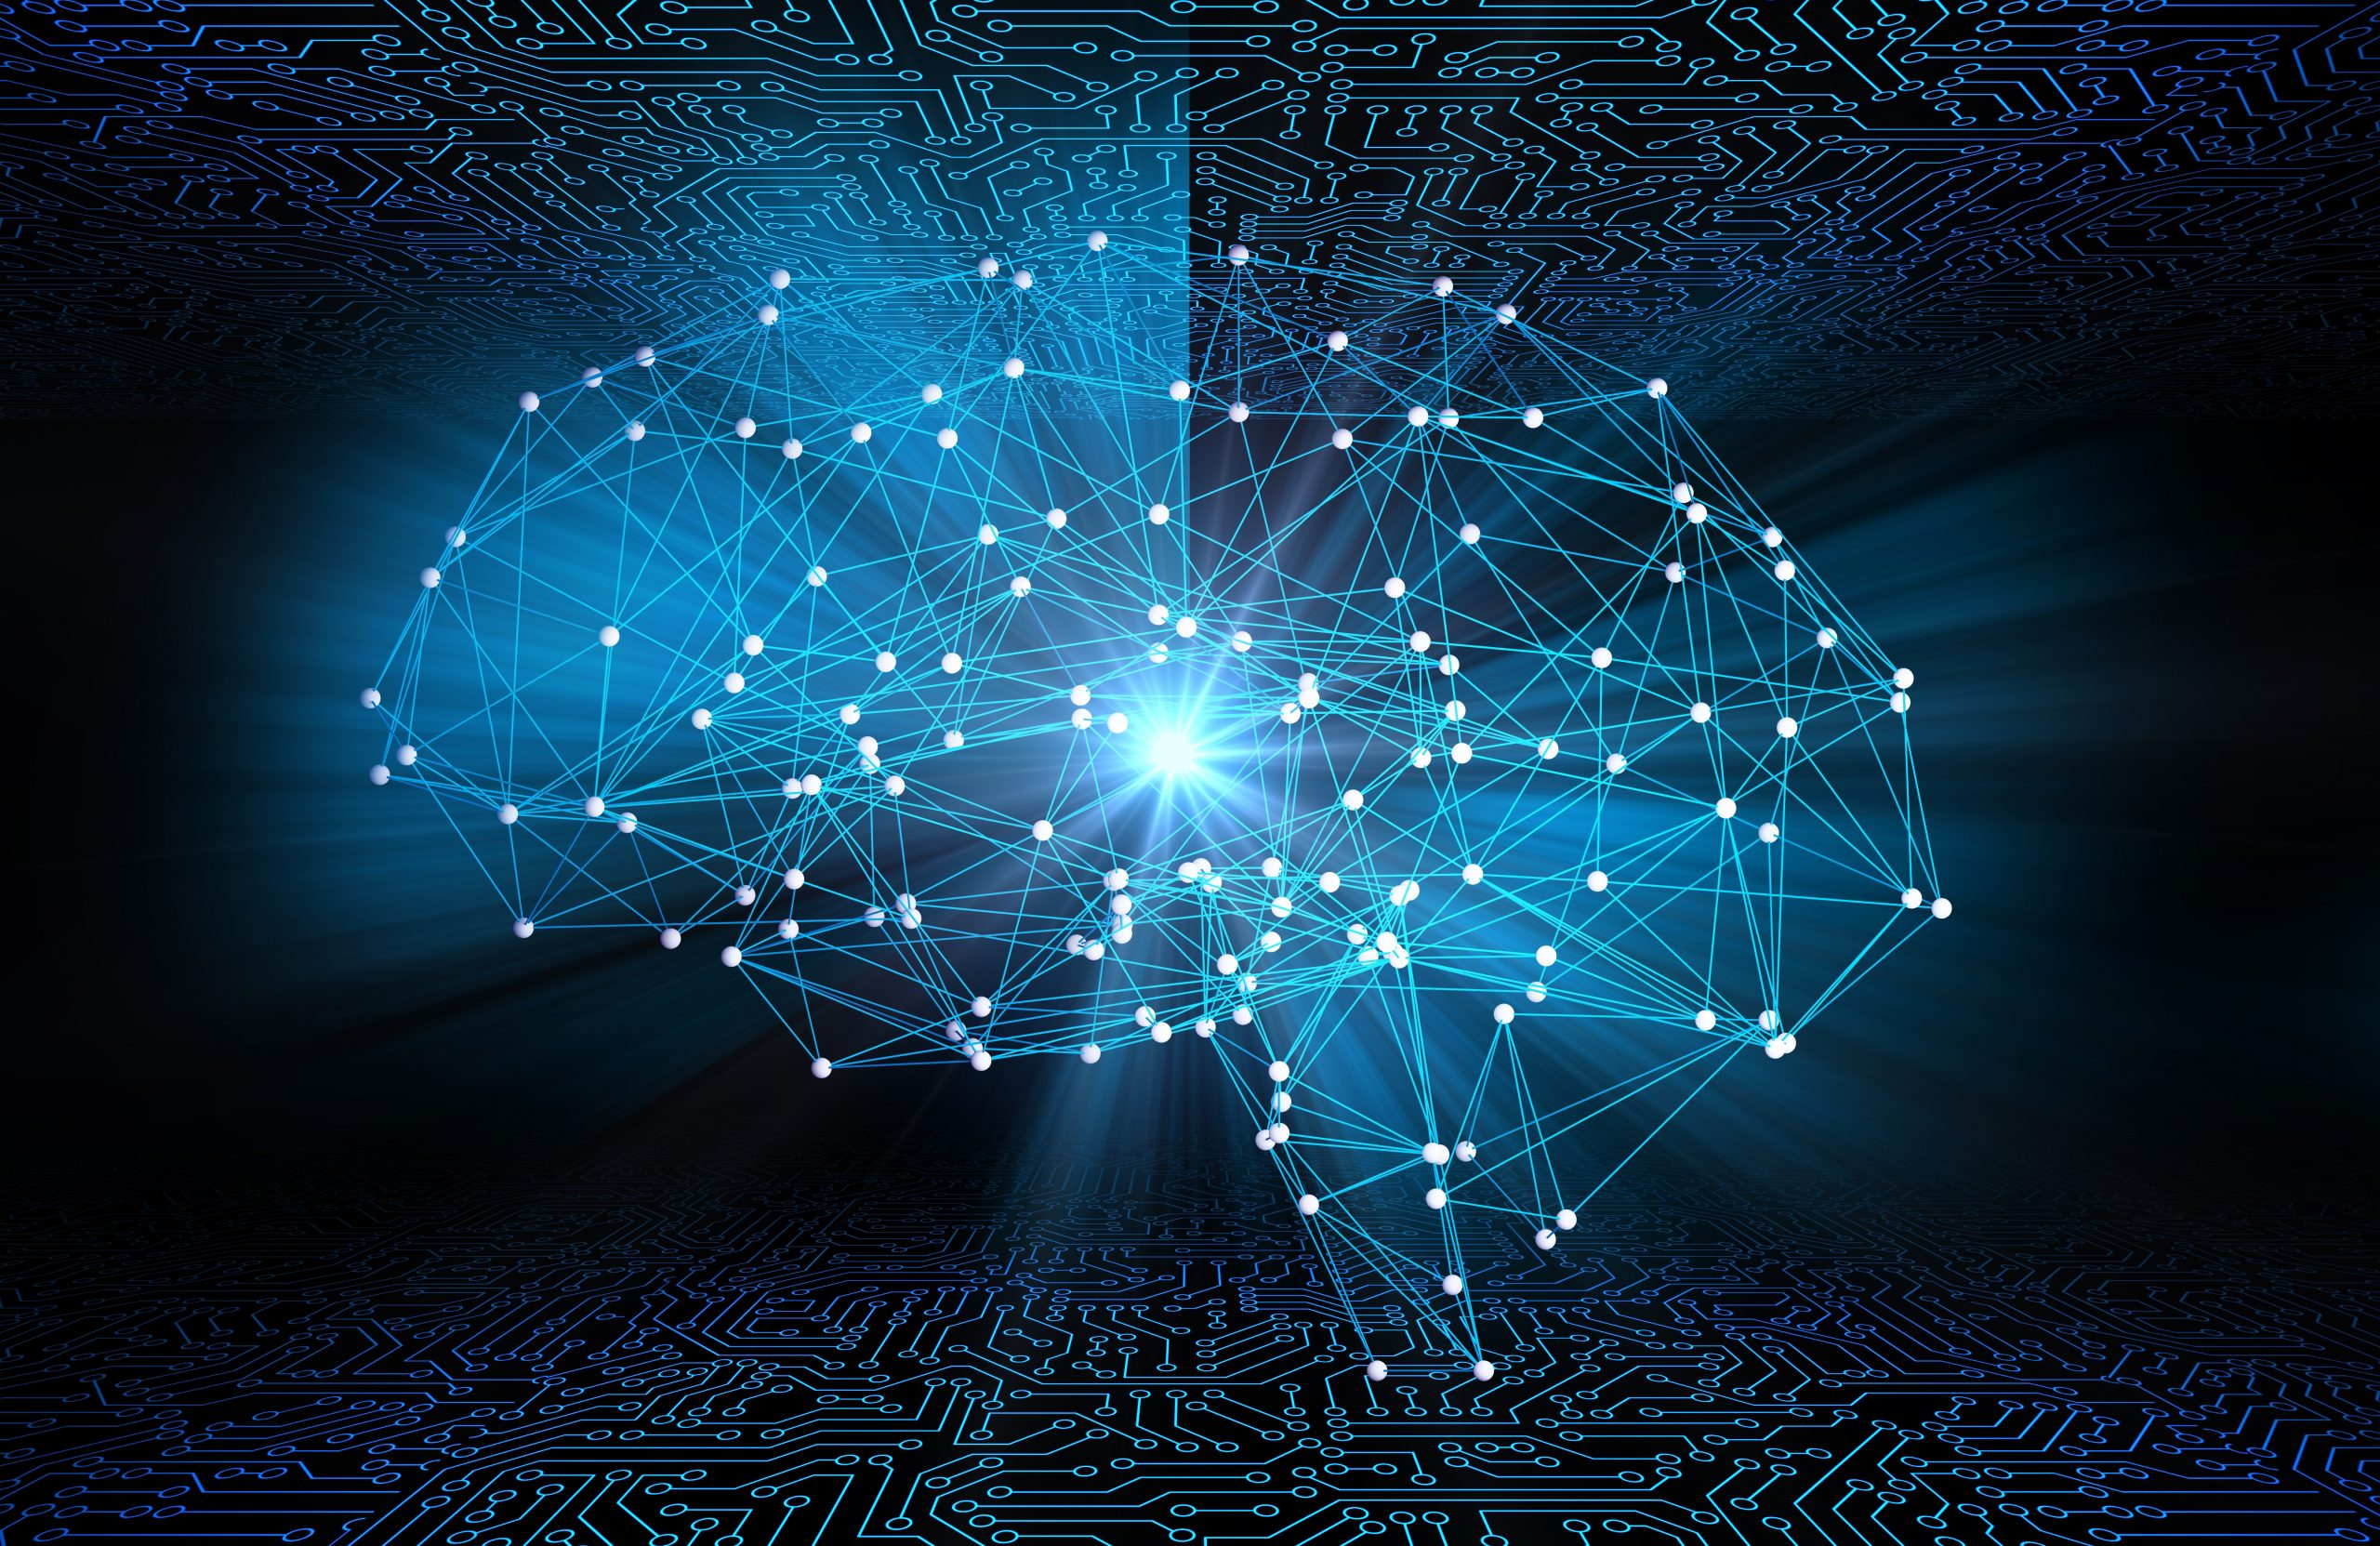 Digital data and network connection of human brain with AI artificial intelligence for technology